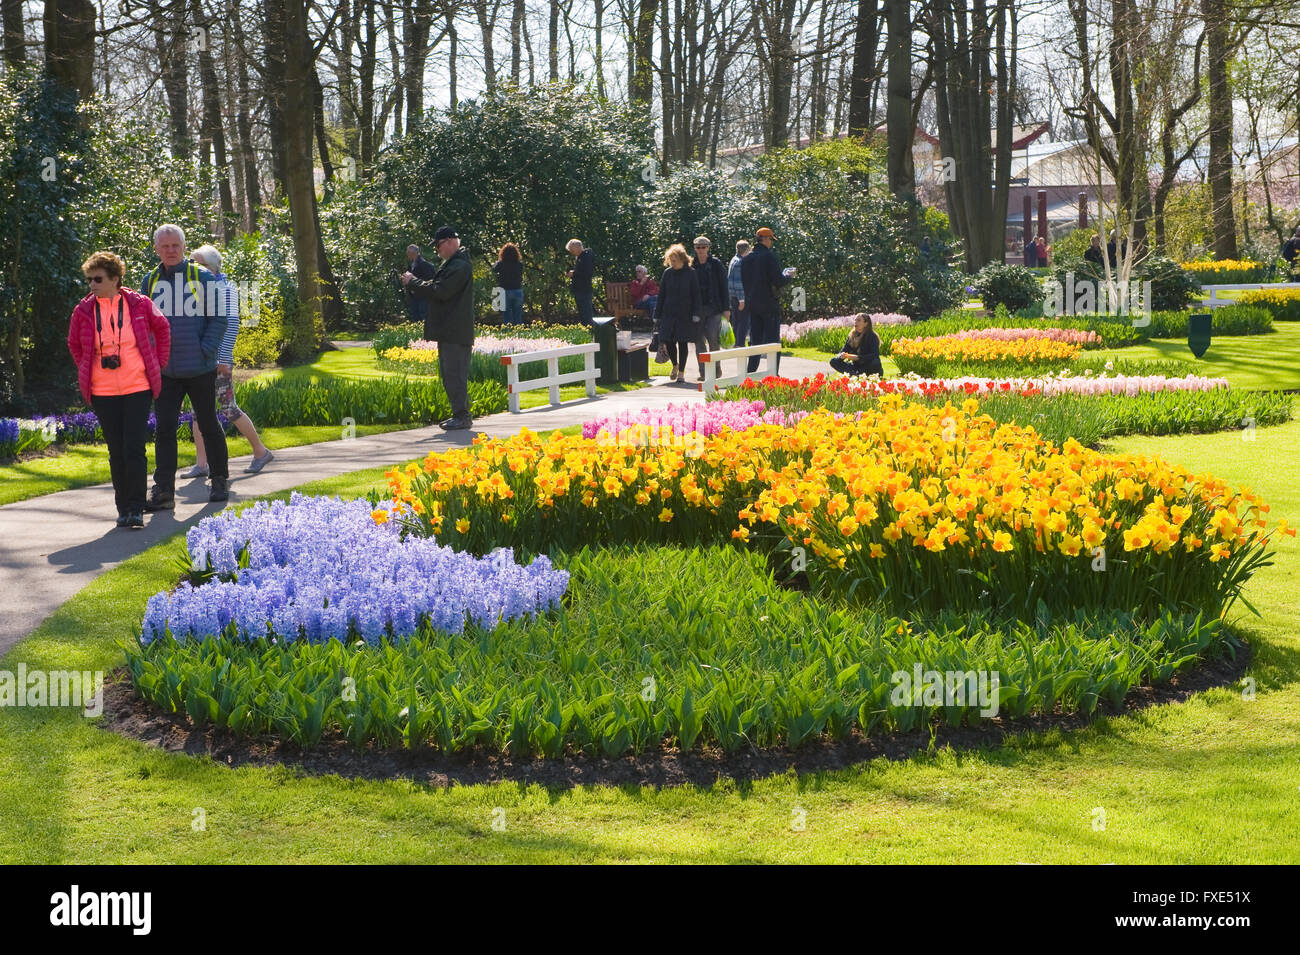 Tourists are visiting 'the Keukenhof' in the spring. The Keukenhof is a popular flower garden. - Stock Image